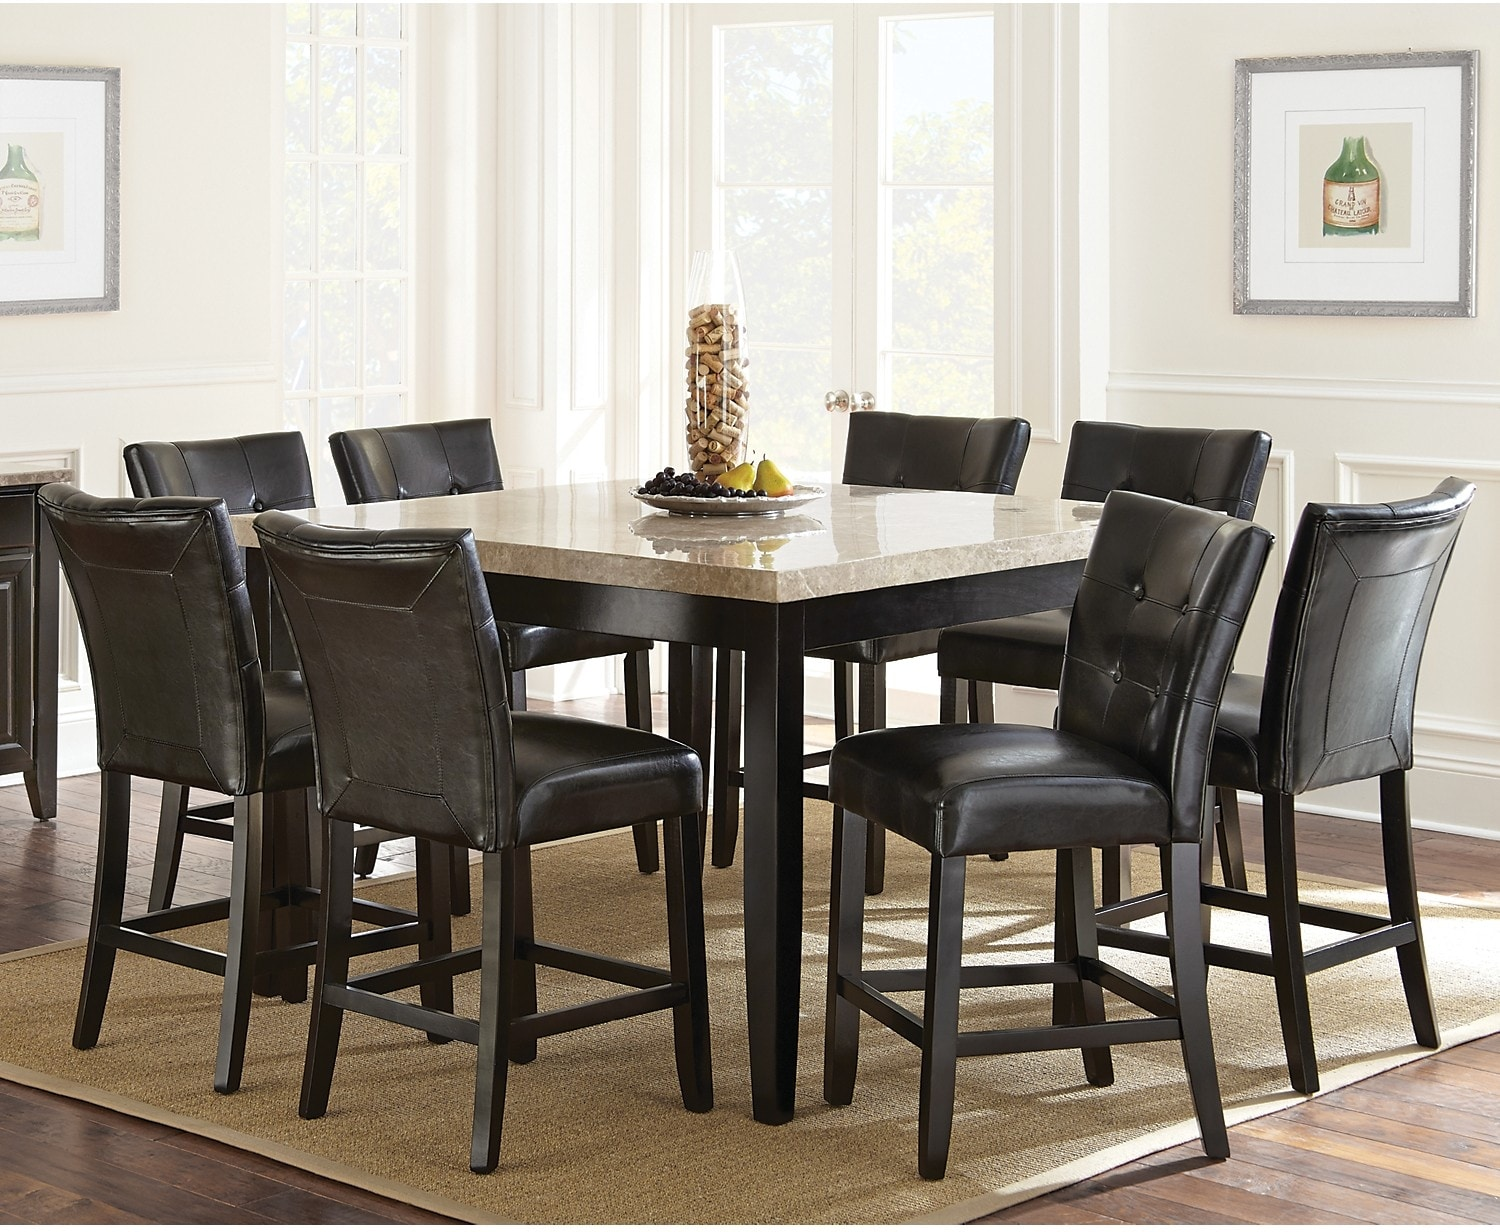 Dining Room Furniture - Montibello 7-Piece Counter-Height Dining Package